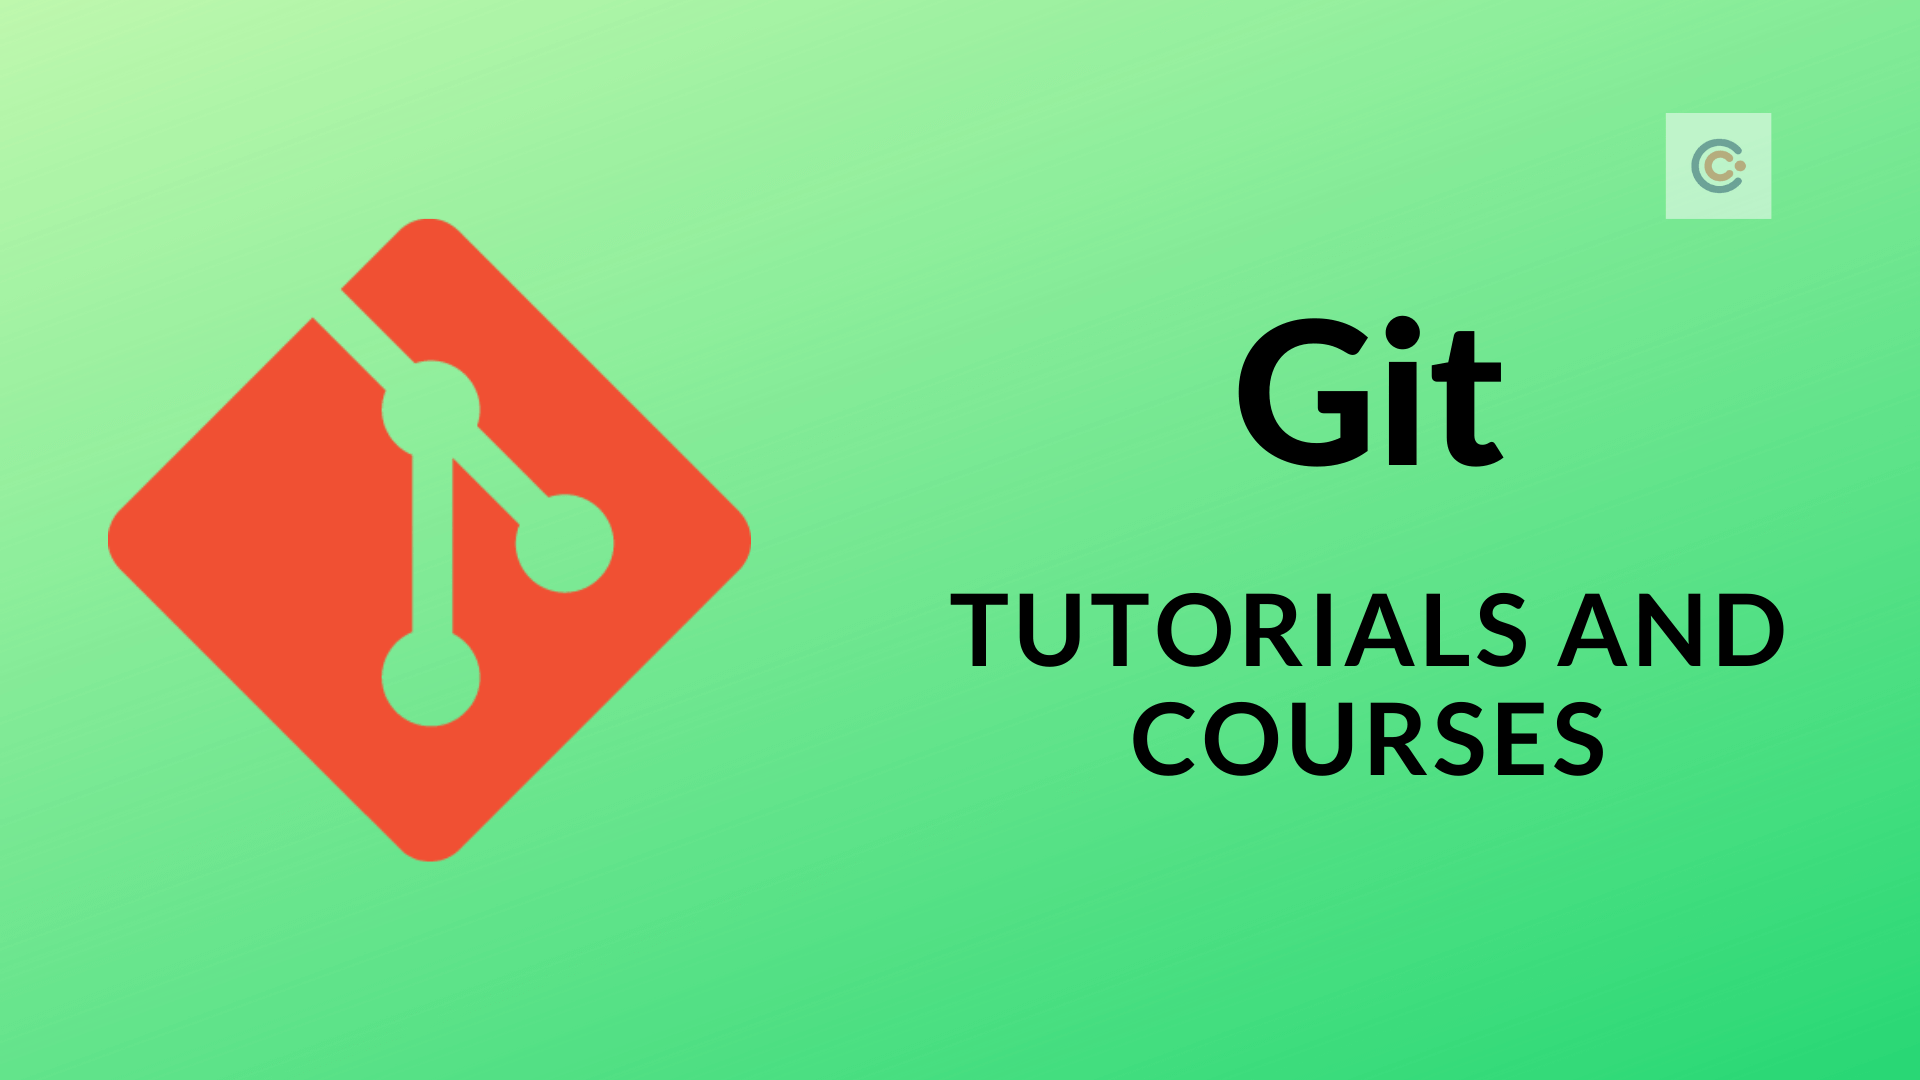 15 Best Git Tutorials & Courses - Learn Git Development Online